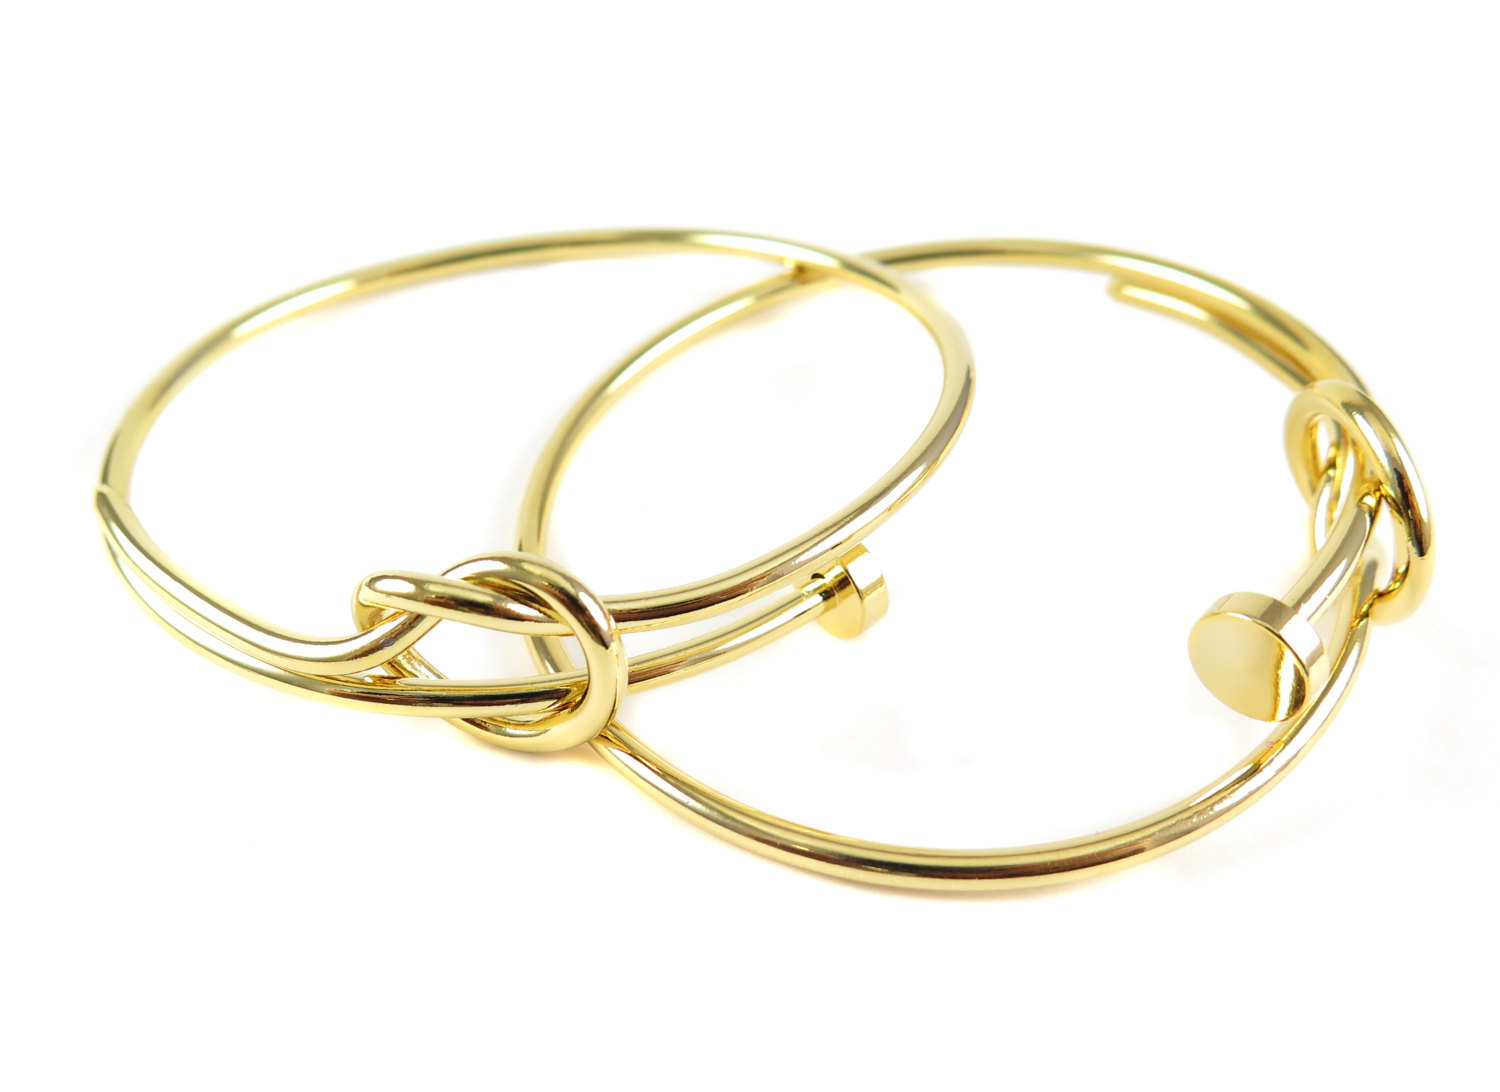 liv embelished chloe gold by oliver bracelet nail bangle brandalley head